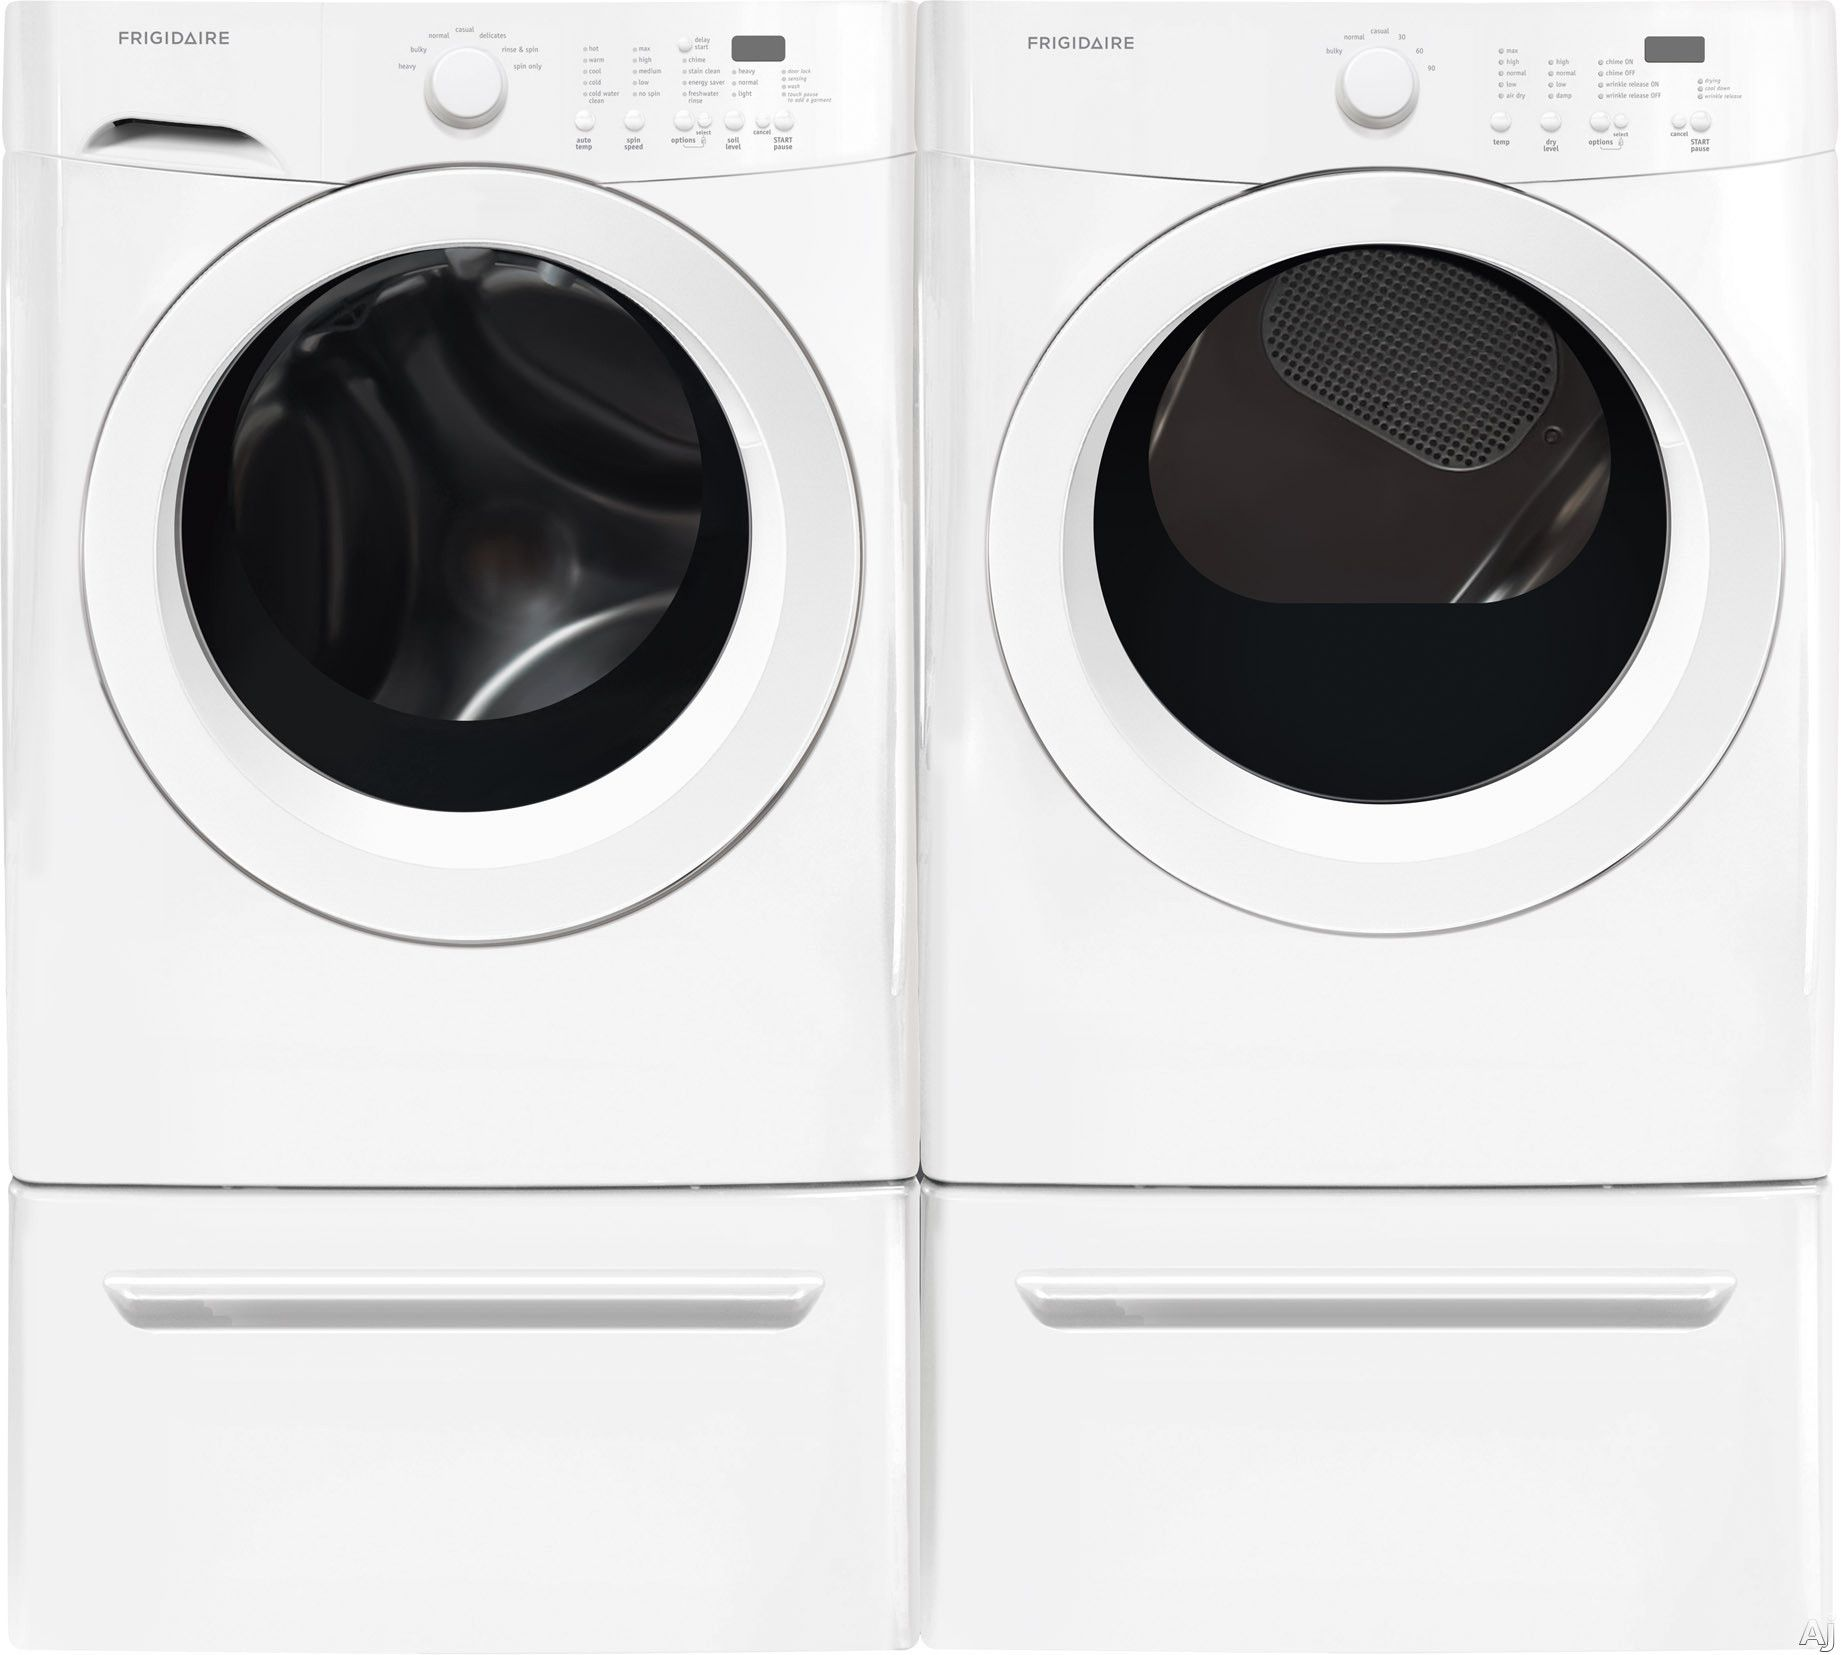 stackable dryer energy com star steel pl at electric laundry washer rebate black stainless shop ft cu pedestal samsung pedestals and lowes